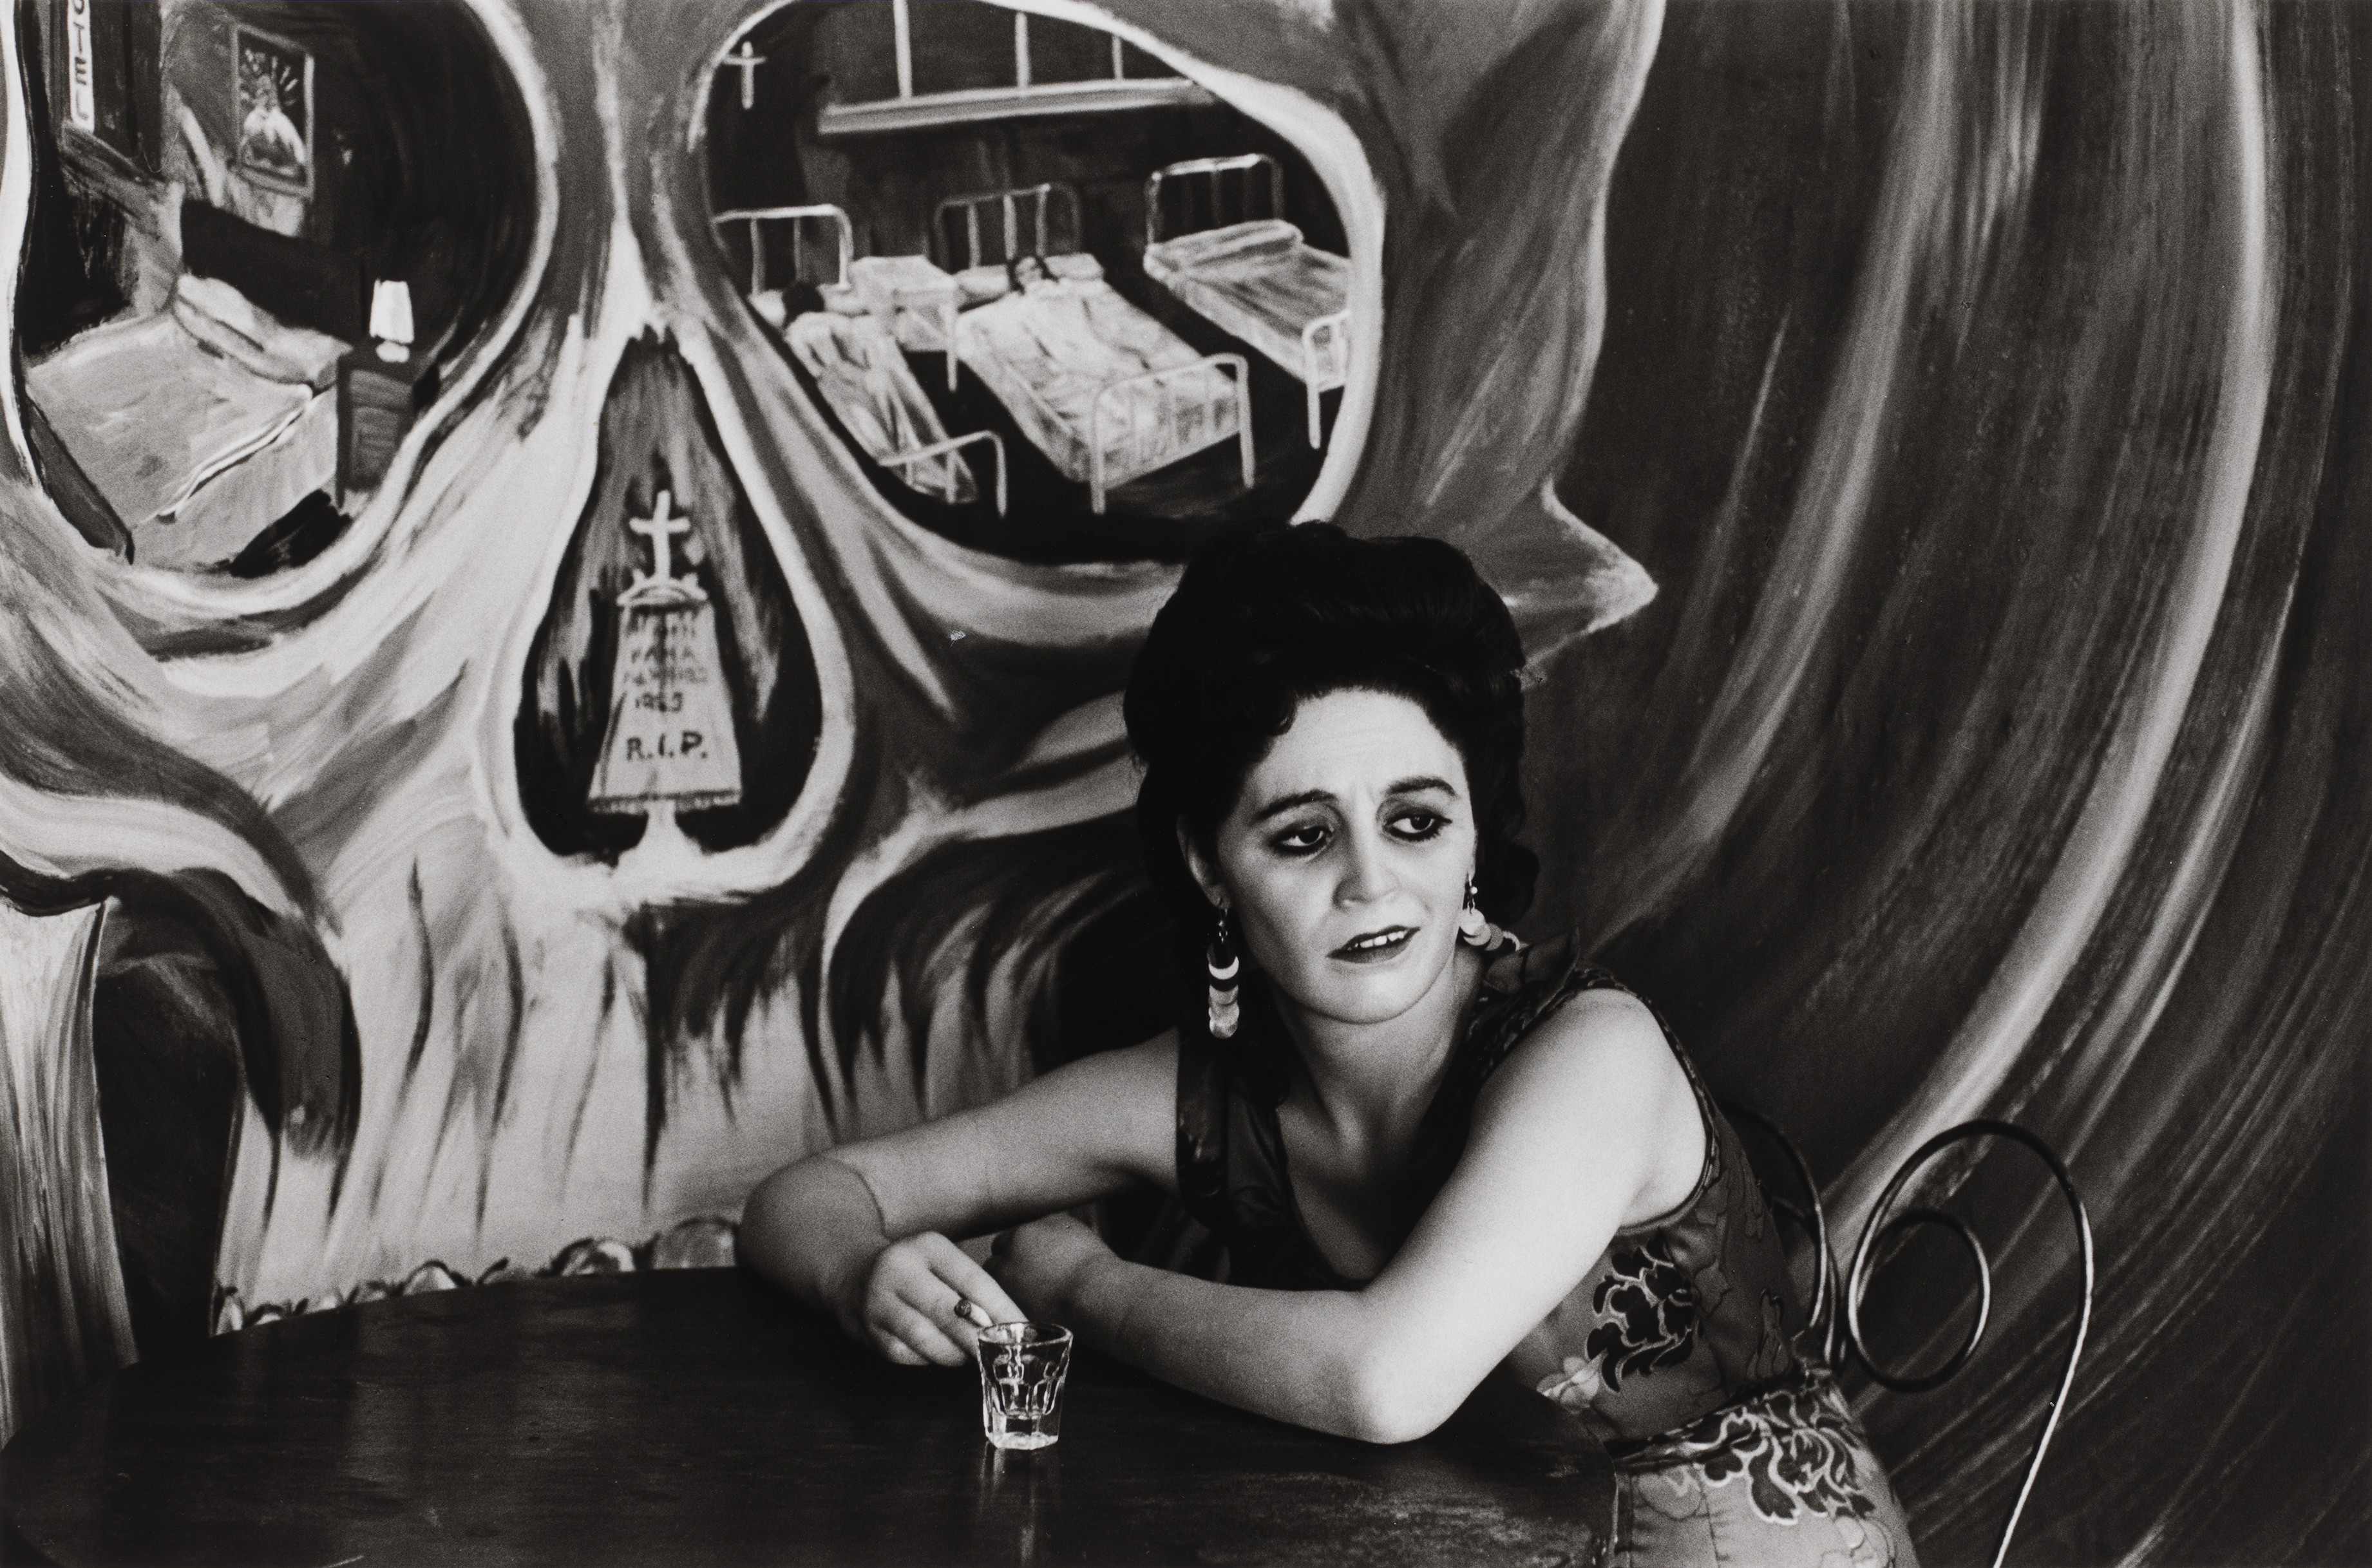 Black and white photograph of light skin toned woman with long dark hair sitting at a cafe table. On the wall behind her is a painted mural of a large skull with hospital beds visible in the eye sockets and a tombstone in the nasal cavity.